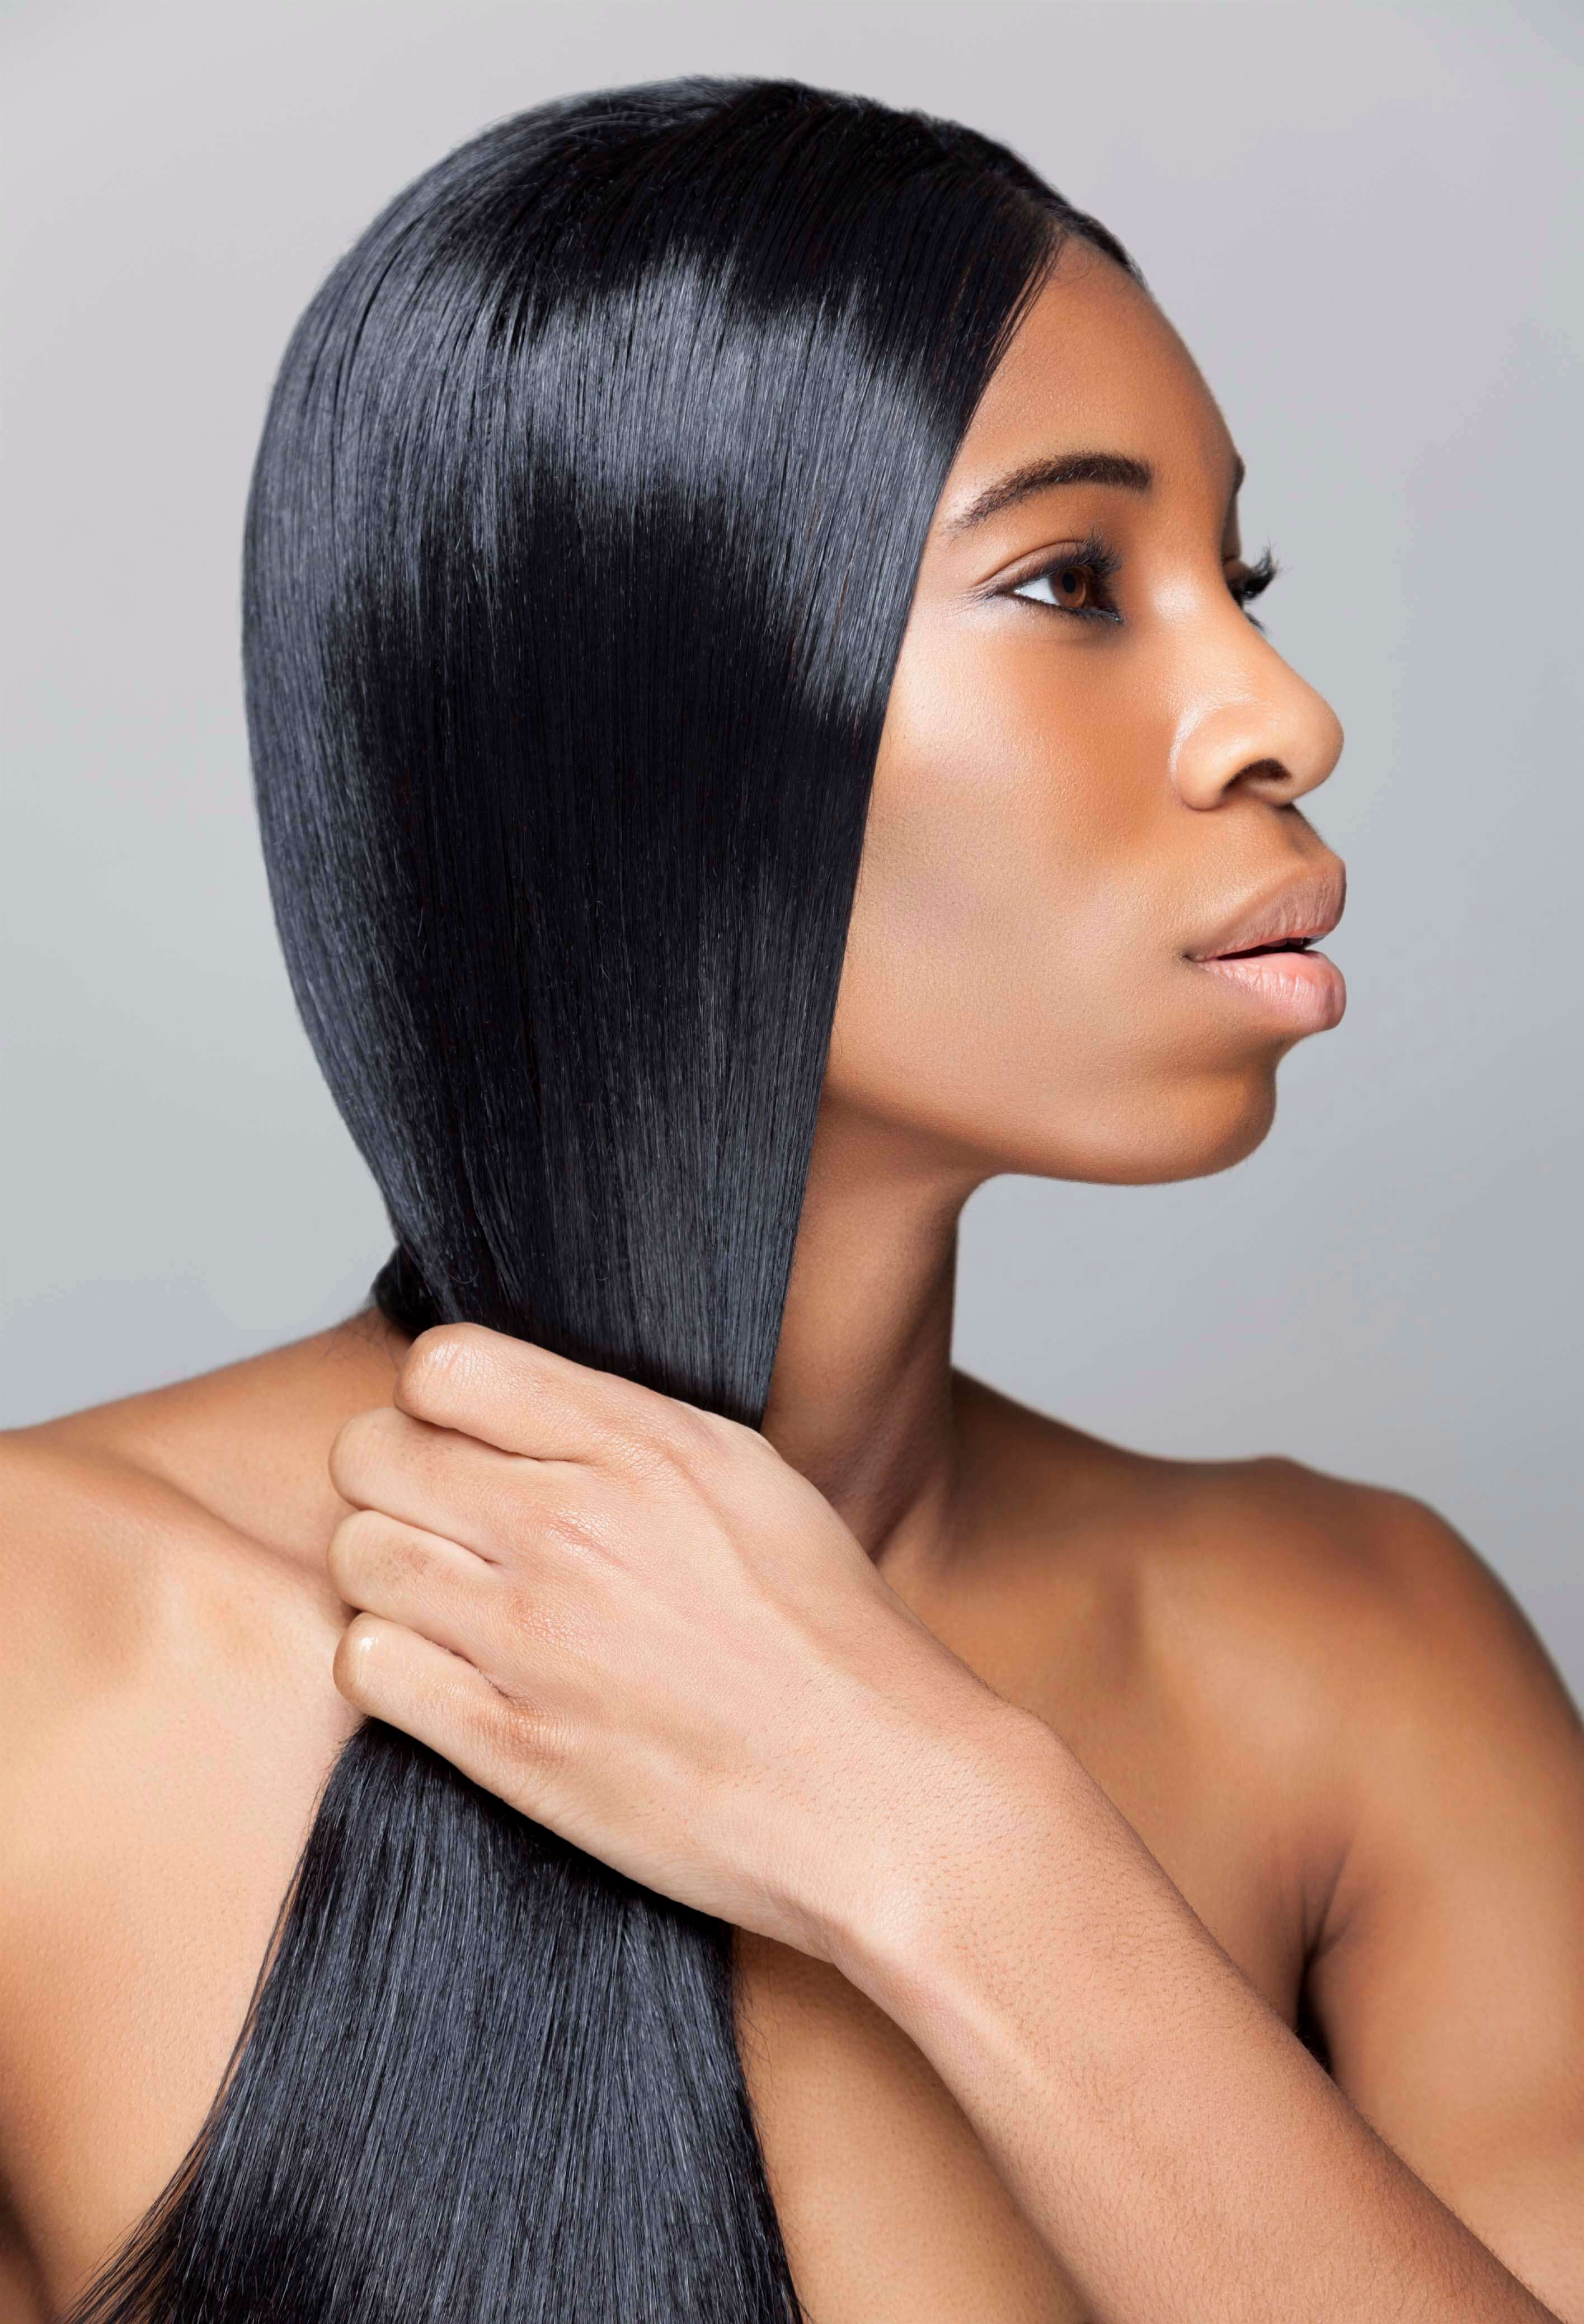 Relaxed hair: young black woman with long straight hair